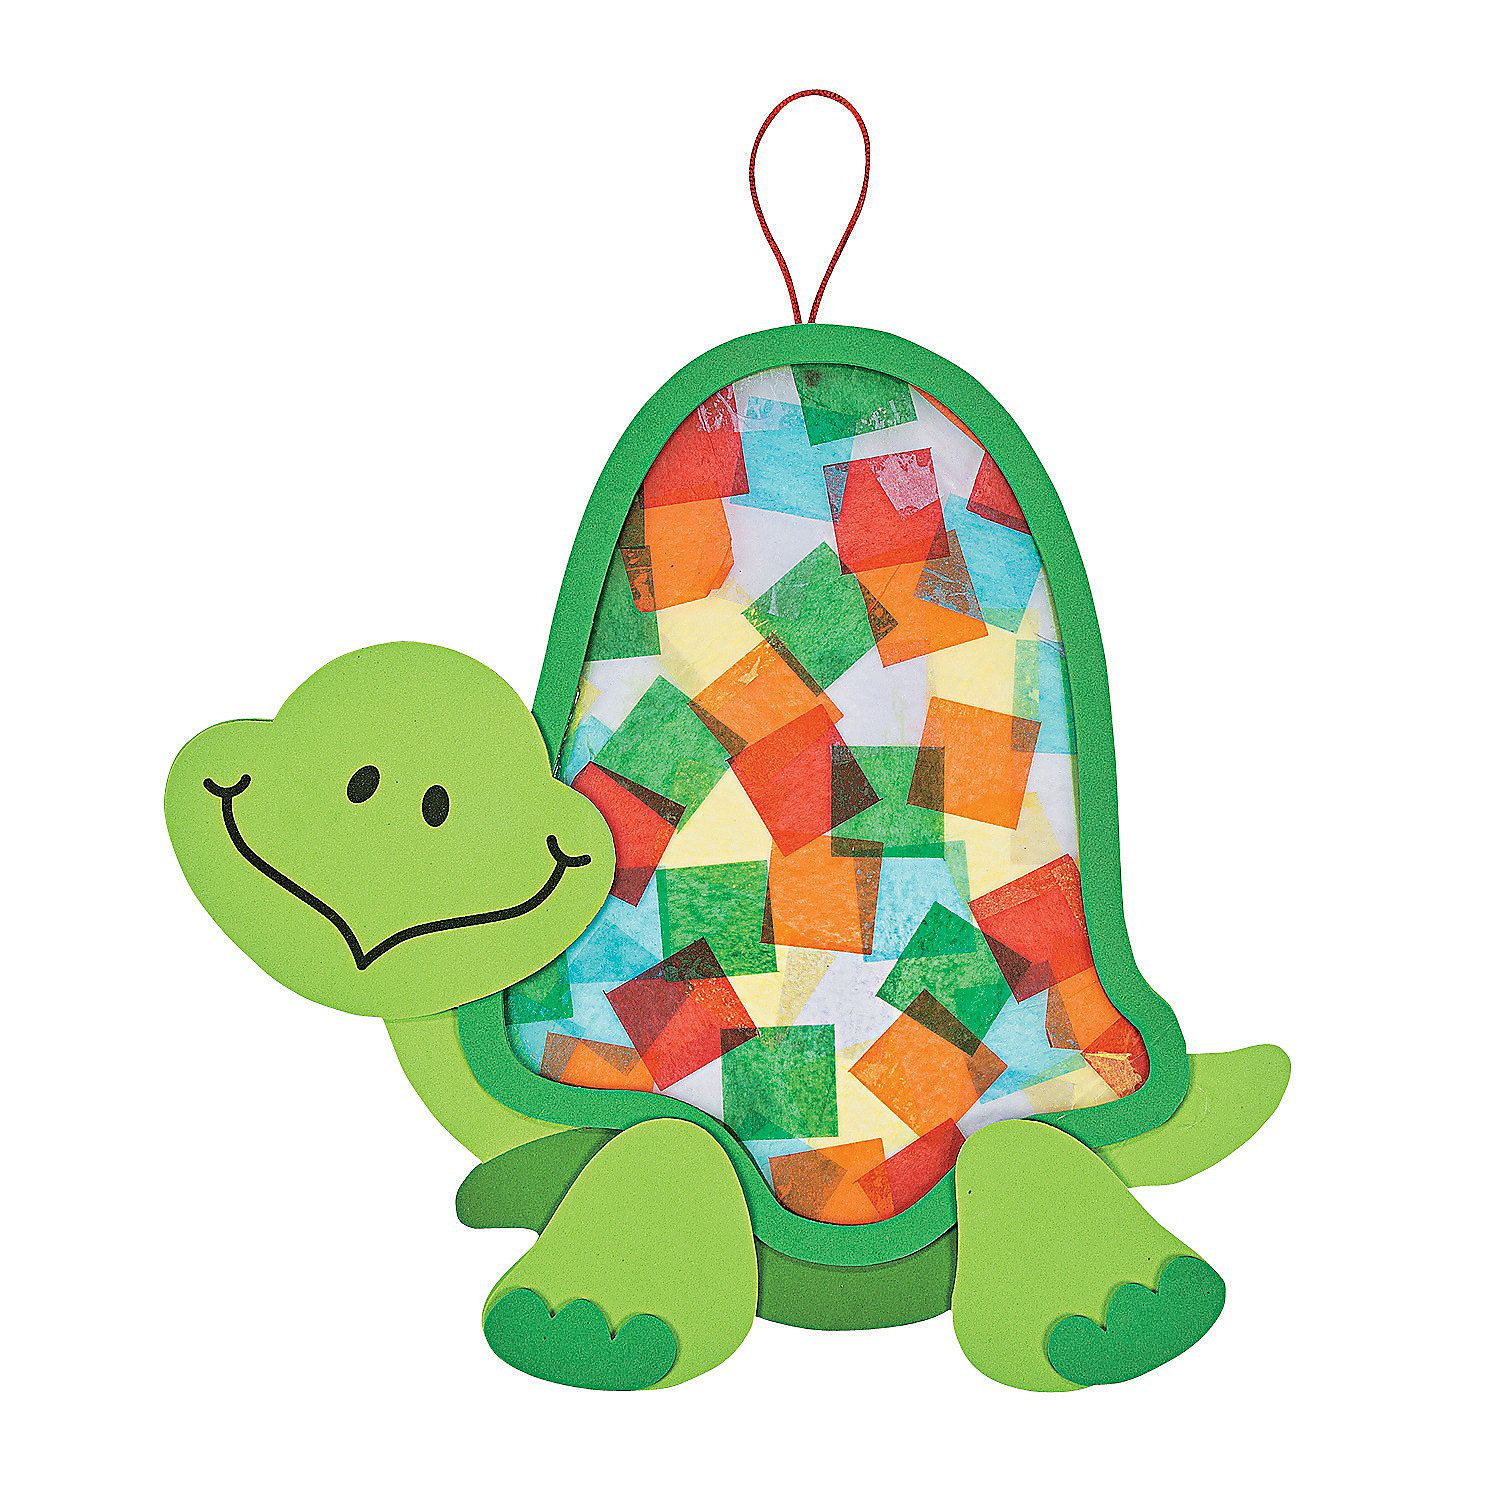 Colorful Turtle Tissue Paper Craft Kit - we did this at ... - photo#11